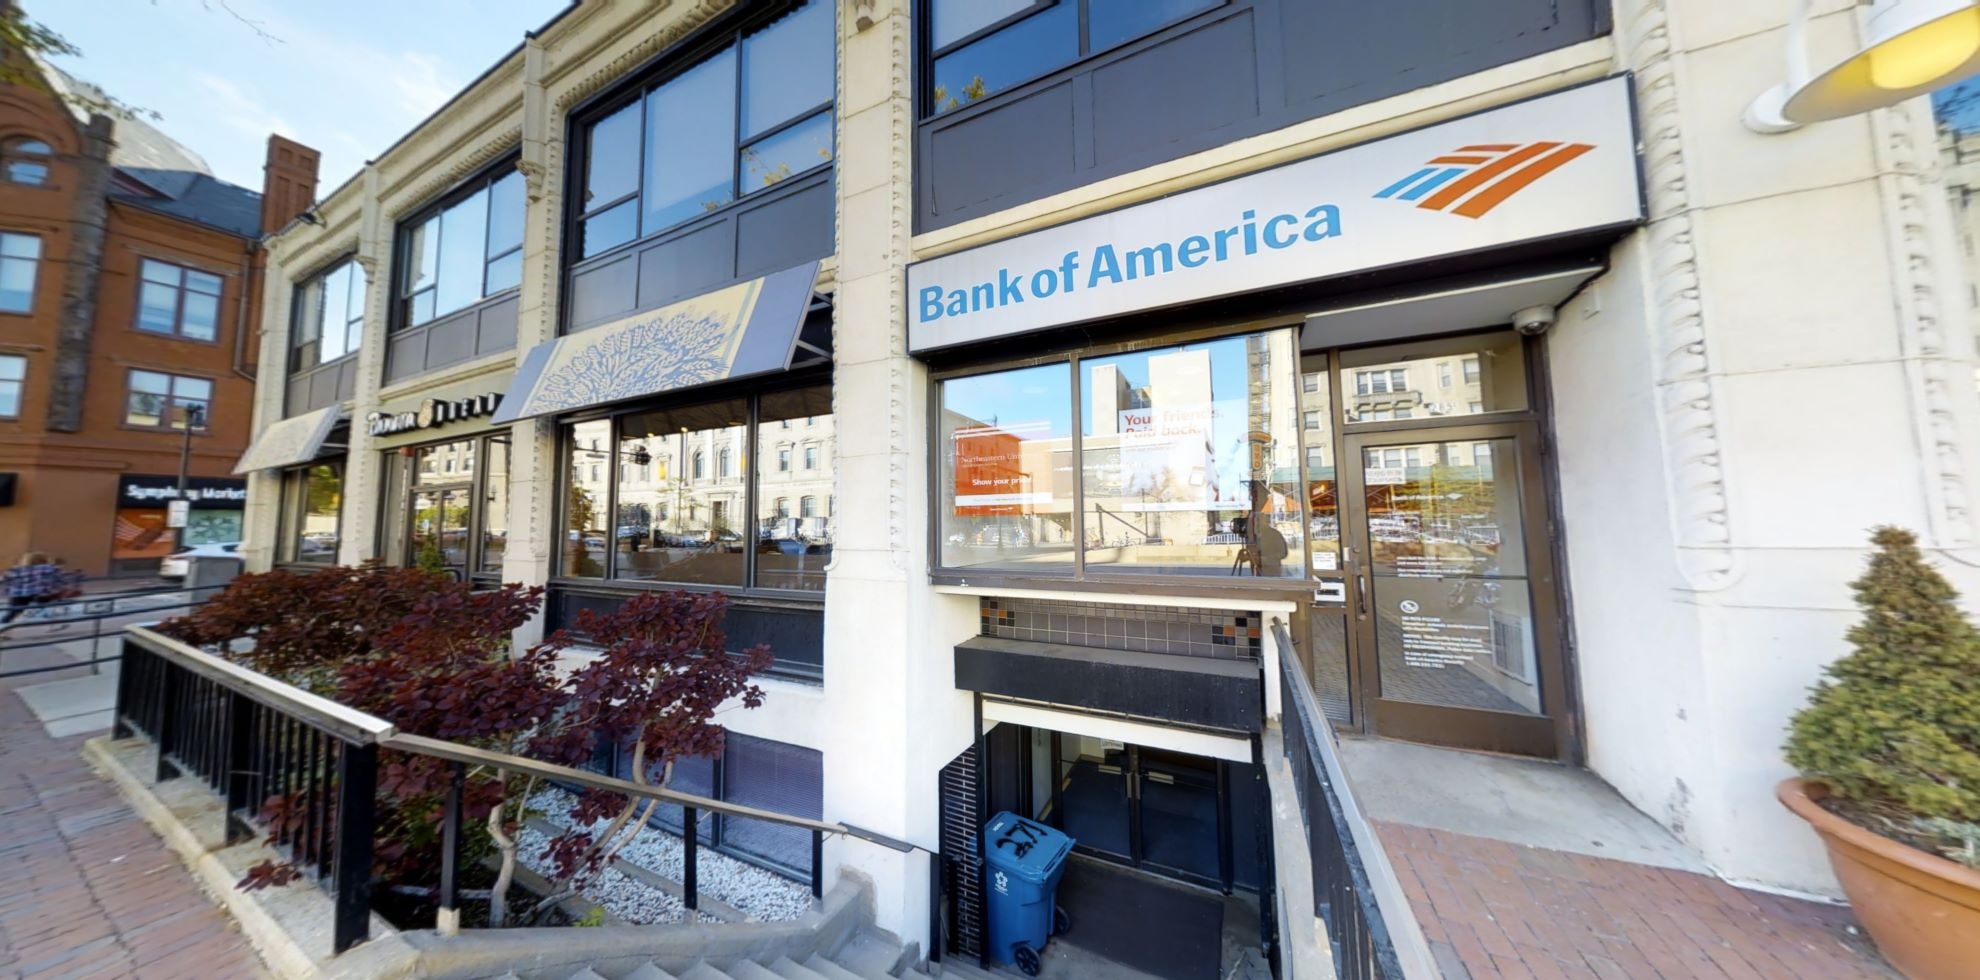 Bank of America financial center with walk-up ATM | 285 Huntington Ave, Boston, MA 02115